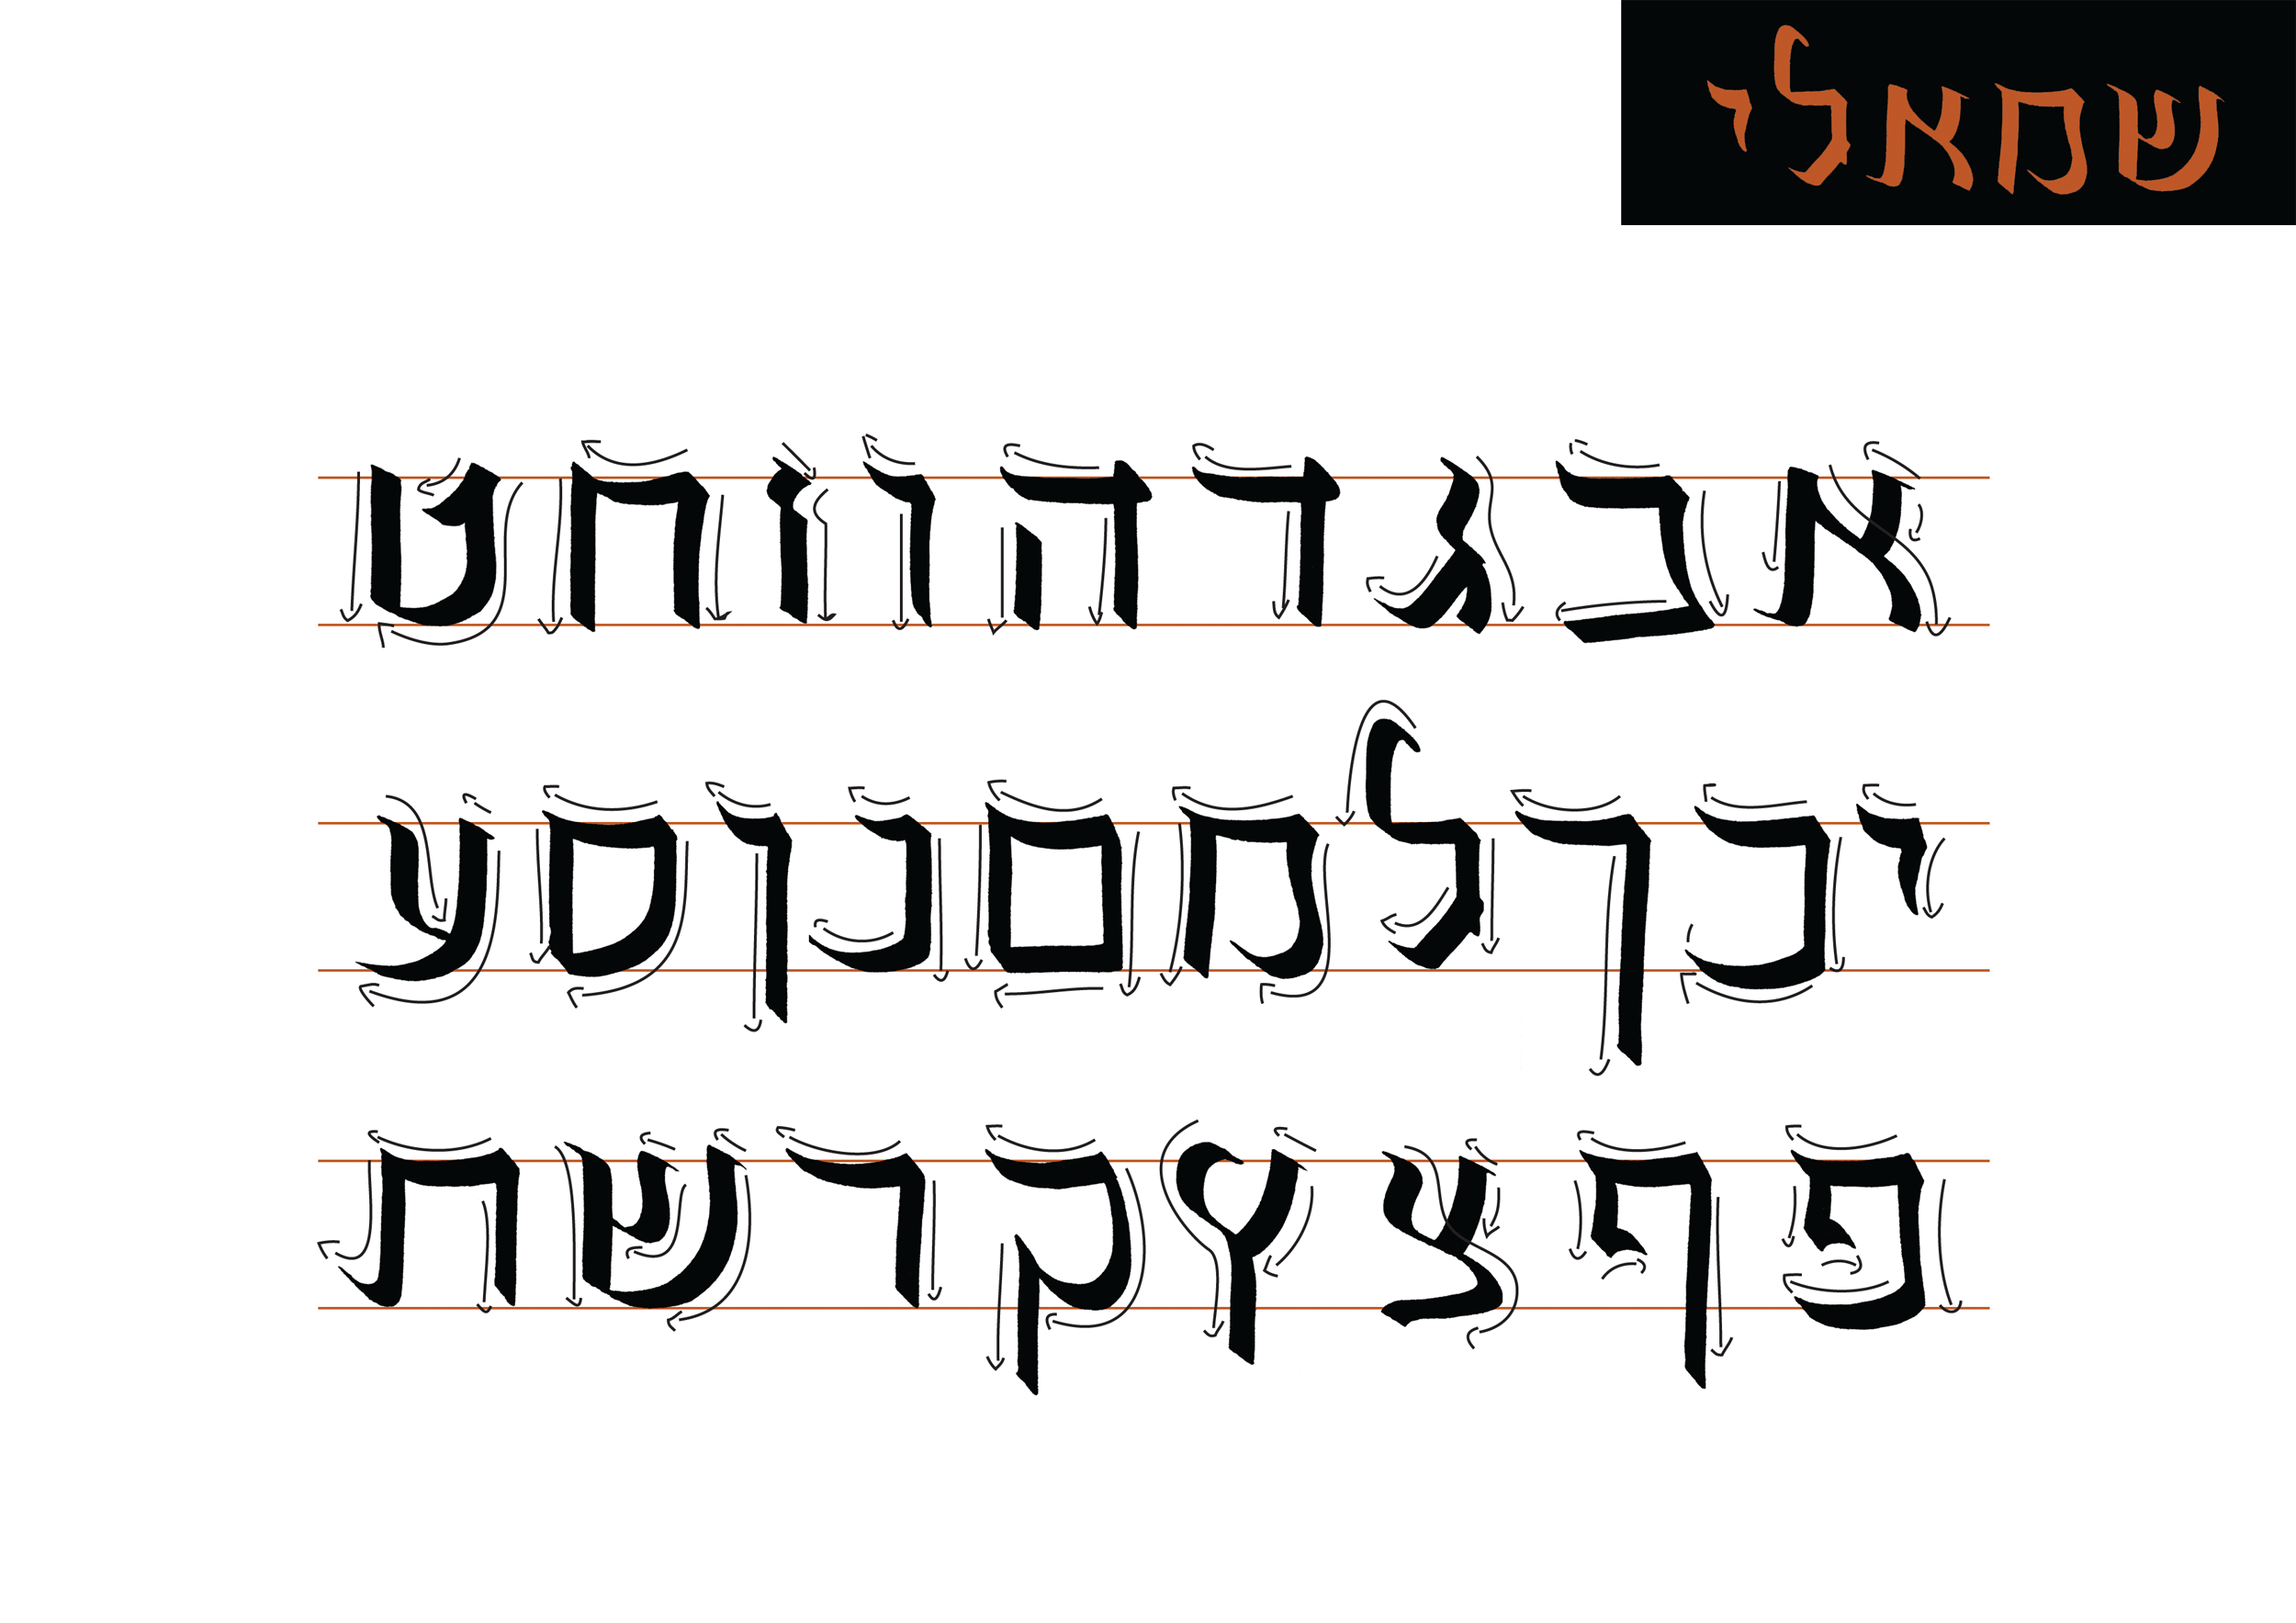 calligraphy writing generator Finding the right calligraphy font for your needs can be a hard and arduous task they are either too decorative and flashy for your simple designs or too simple and modern for your formal designs calligraphy fonts have many uses and are best paired with a simple body font for balance.